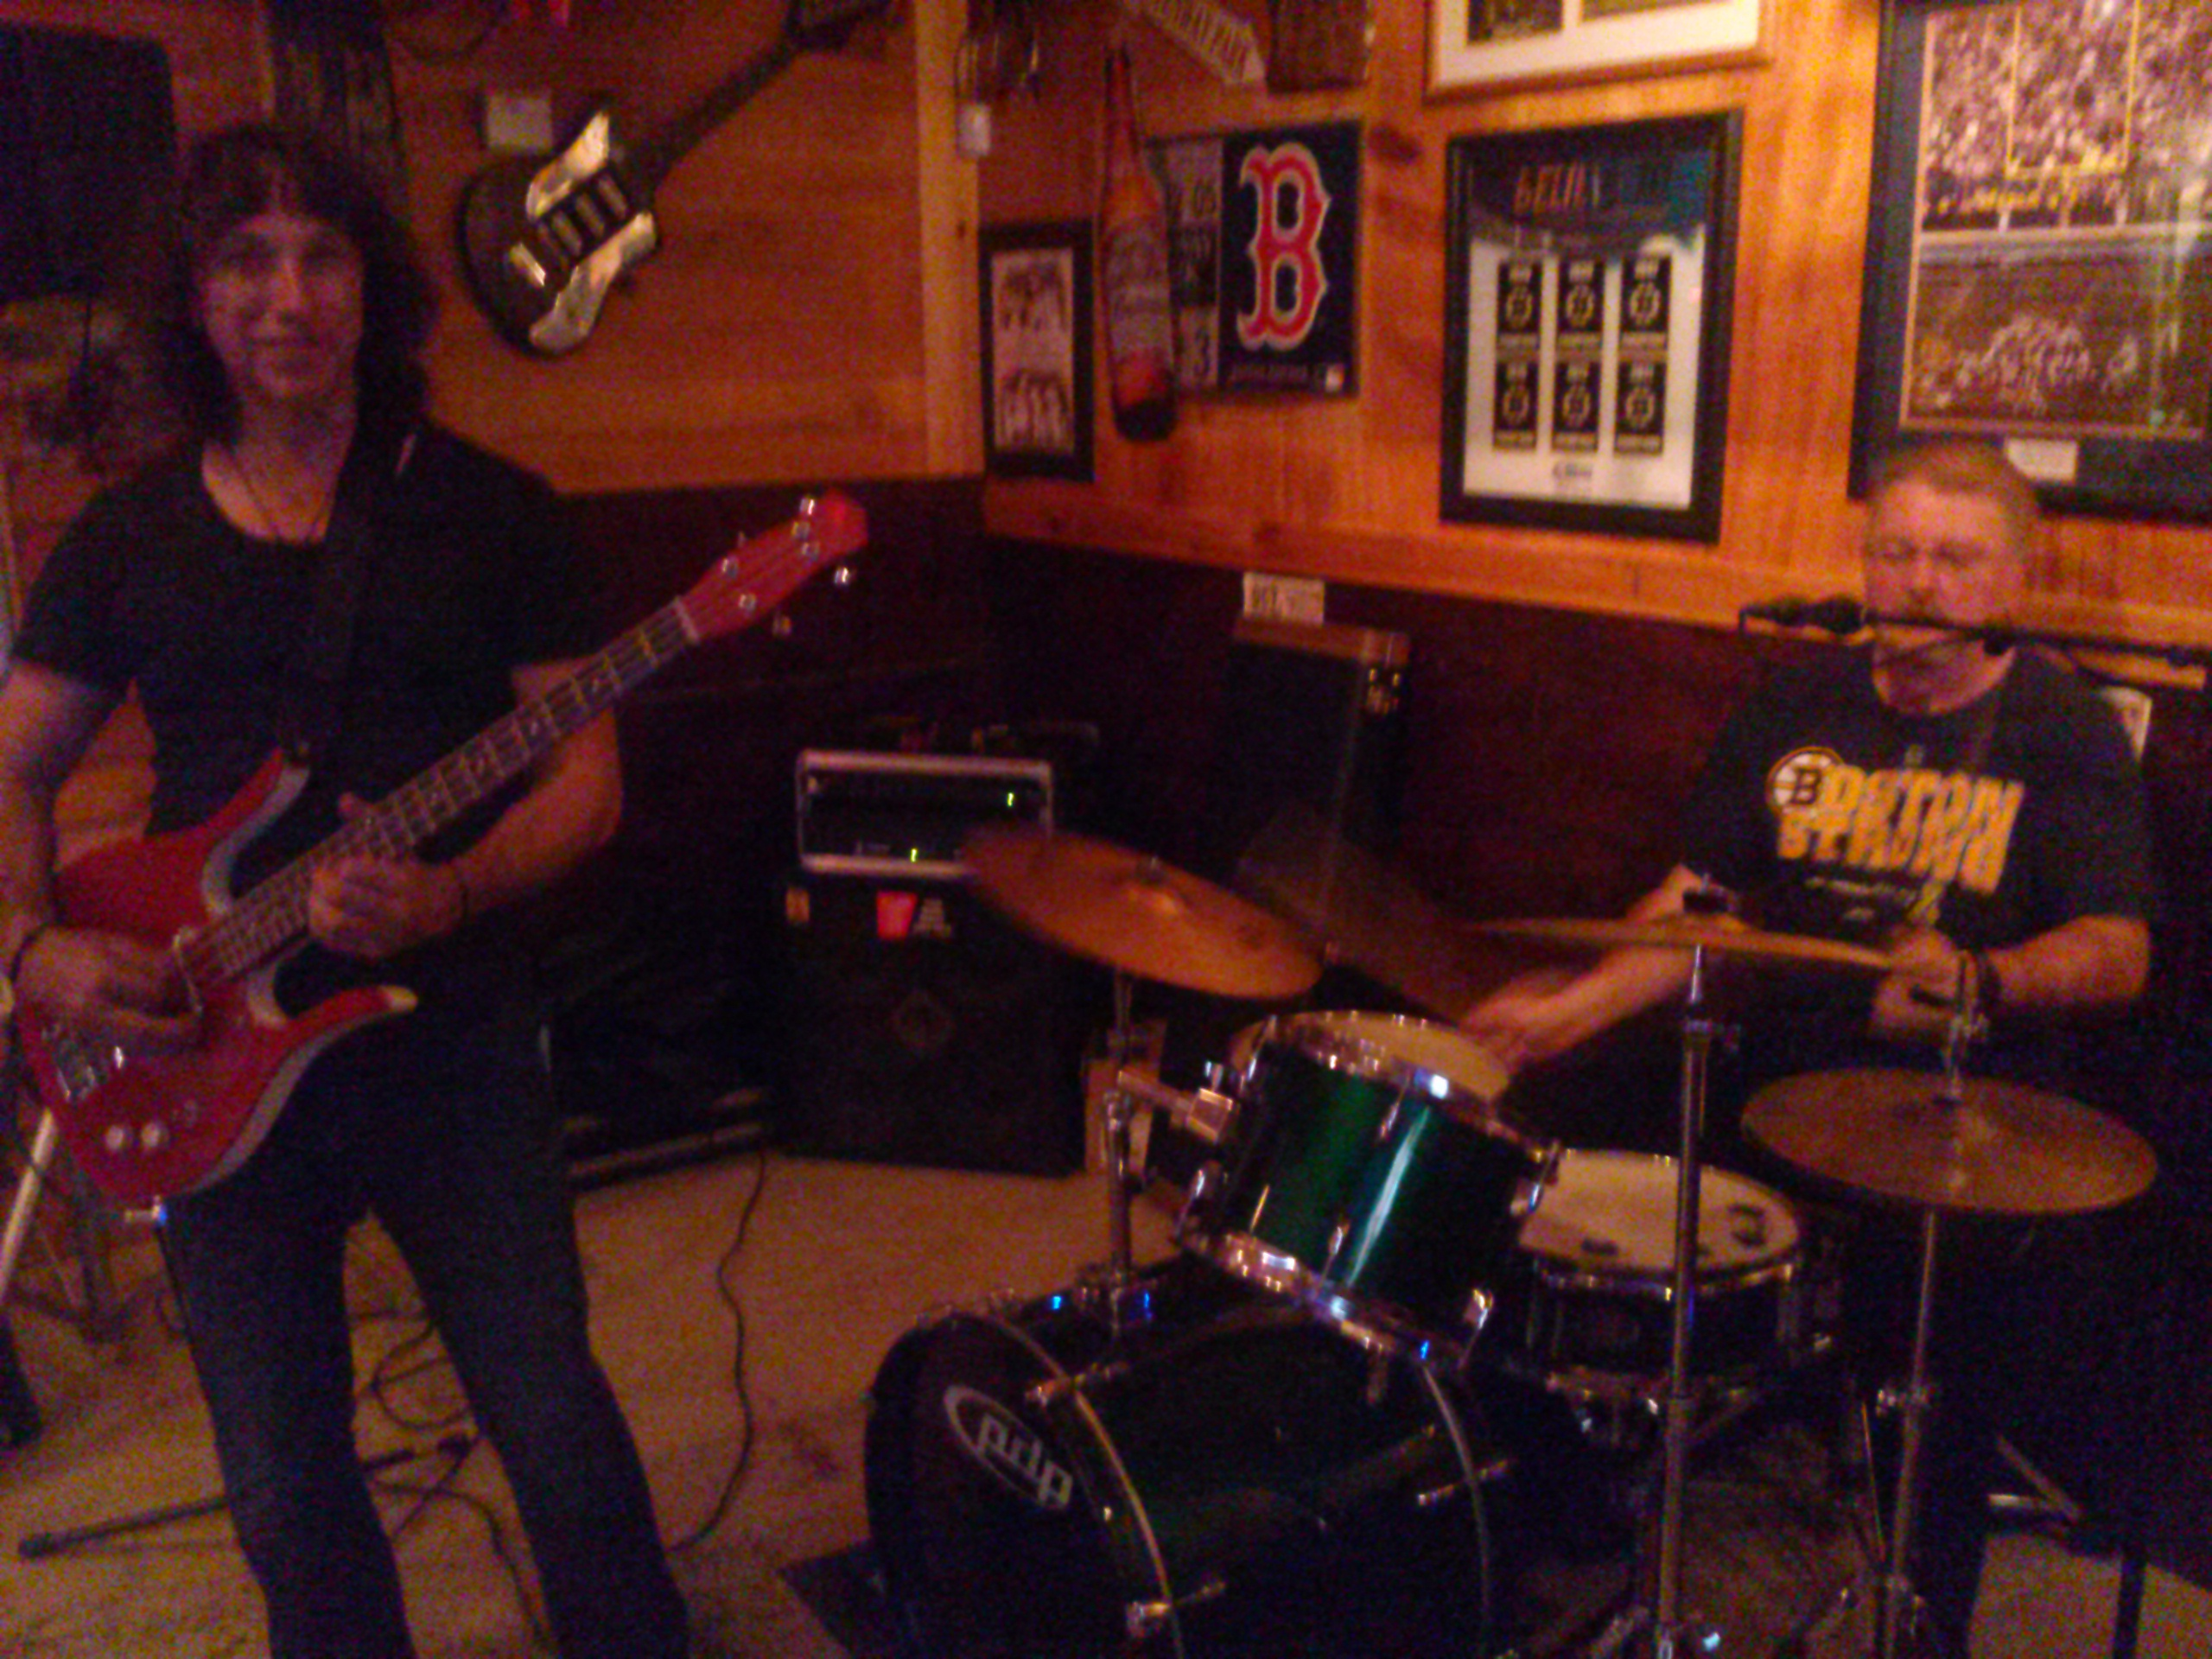 The Mcmurphys Rocked Boondocks Tavern Country Grill In Weare Nh